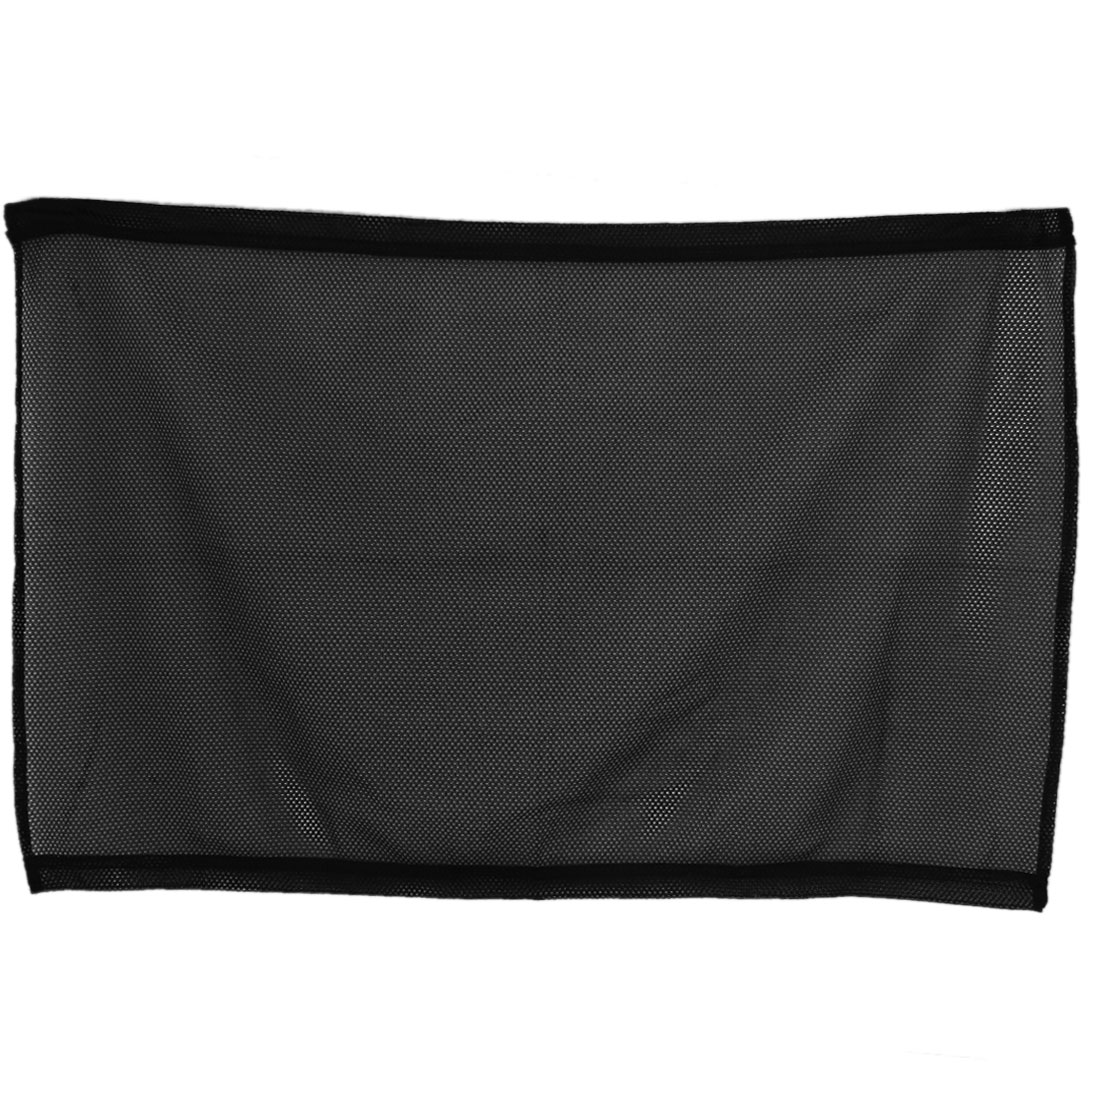 48cm x 70cm Car Side Window Shade Sunshade Meshy Cover Curtain Black 2 Pcs